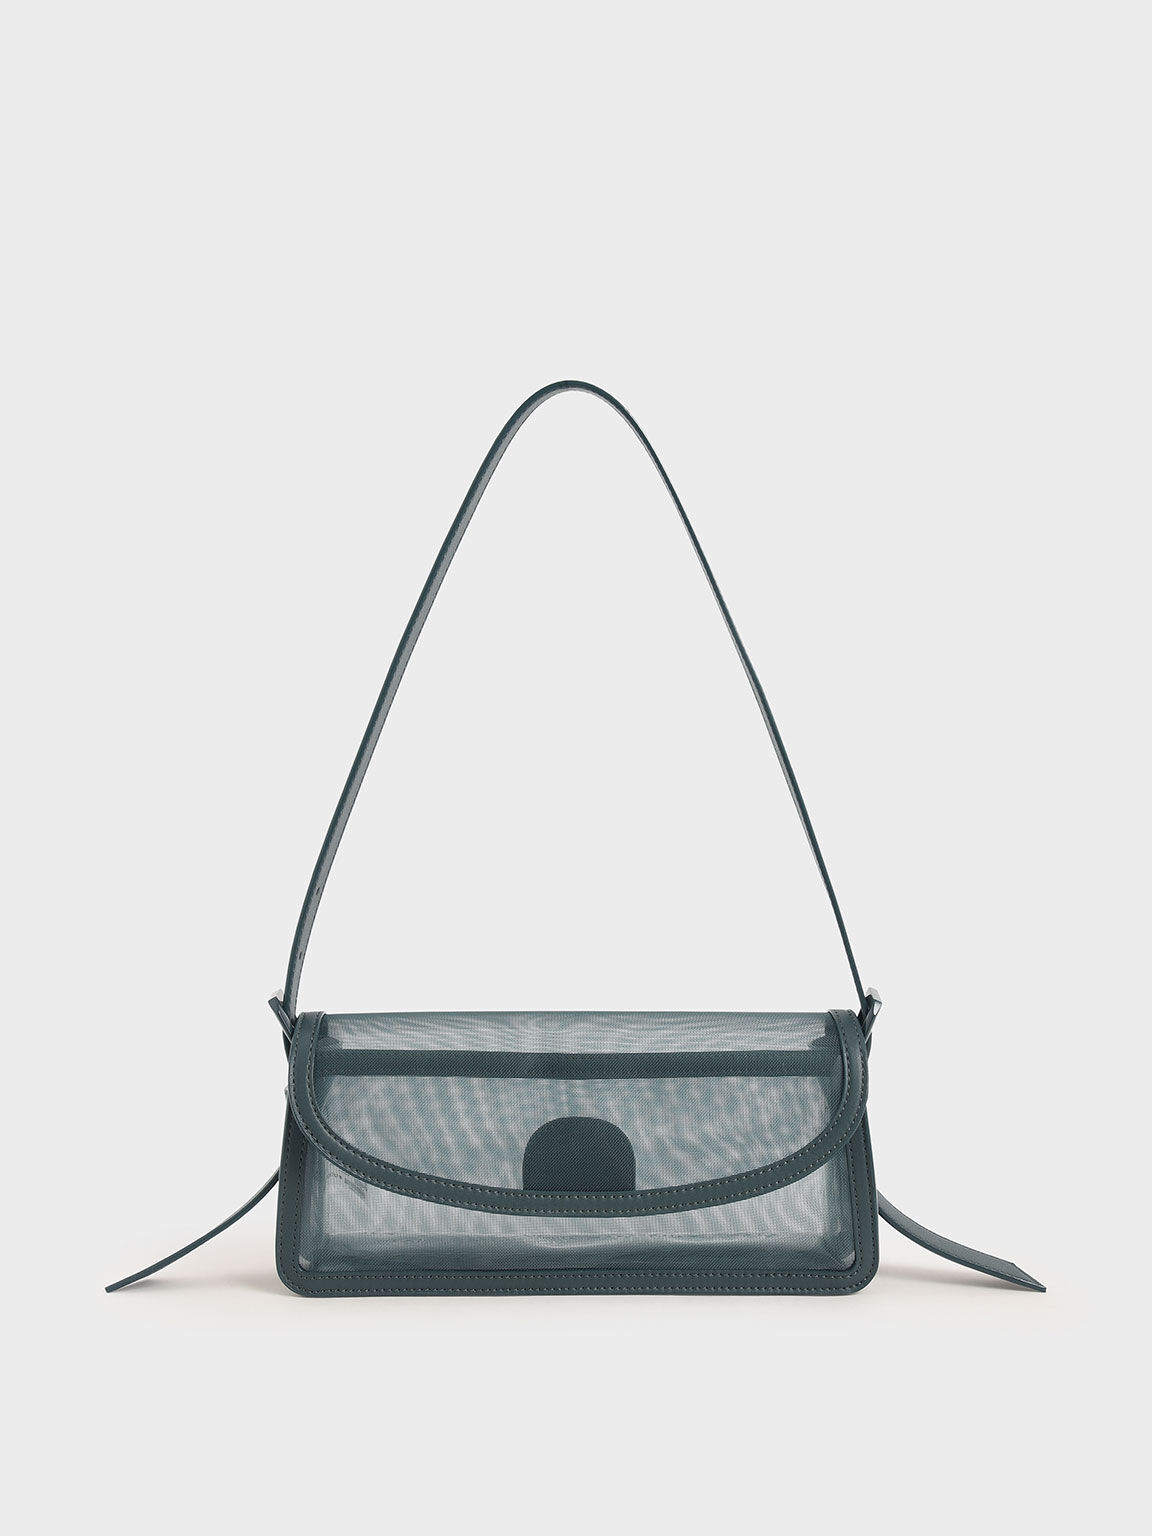 Mesh Shoulder Bag, Teal, hi-res